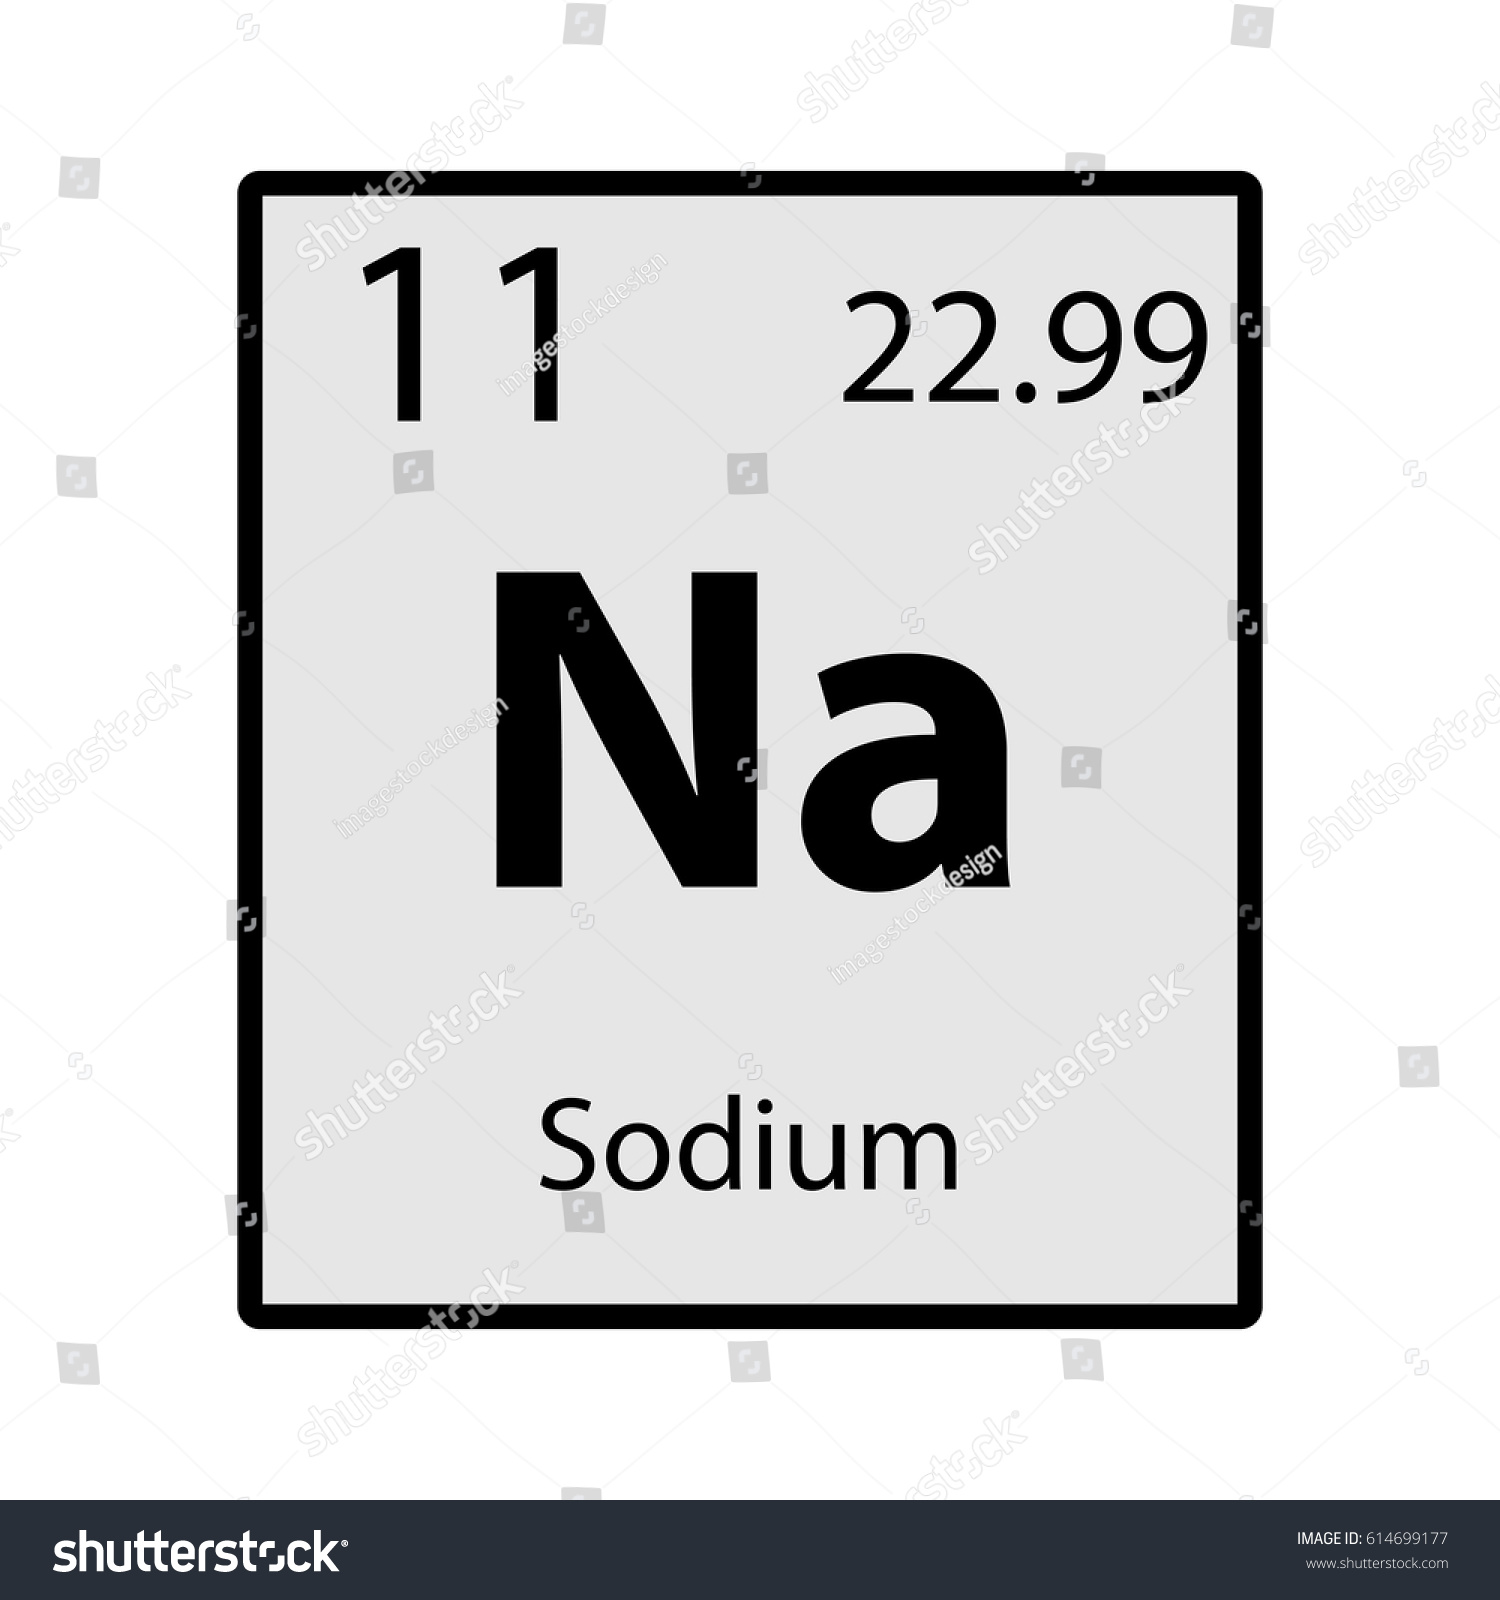 Sodium Periodic Table Element Gray Icon Stock Vector ...